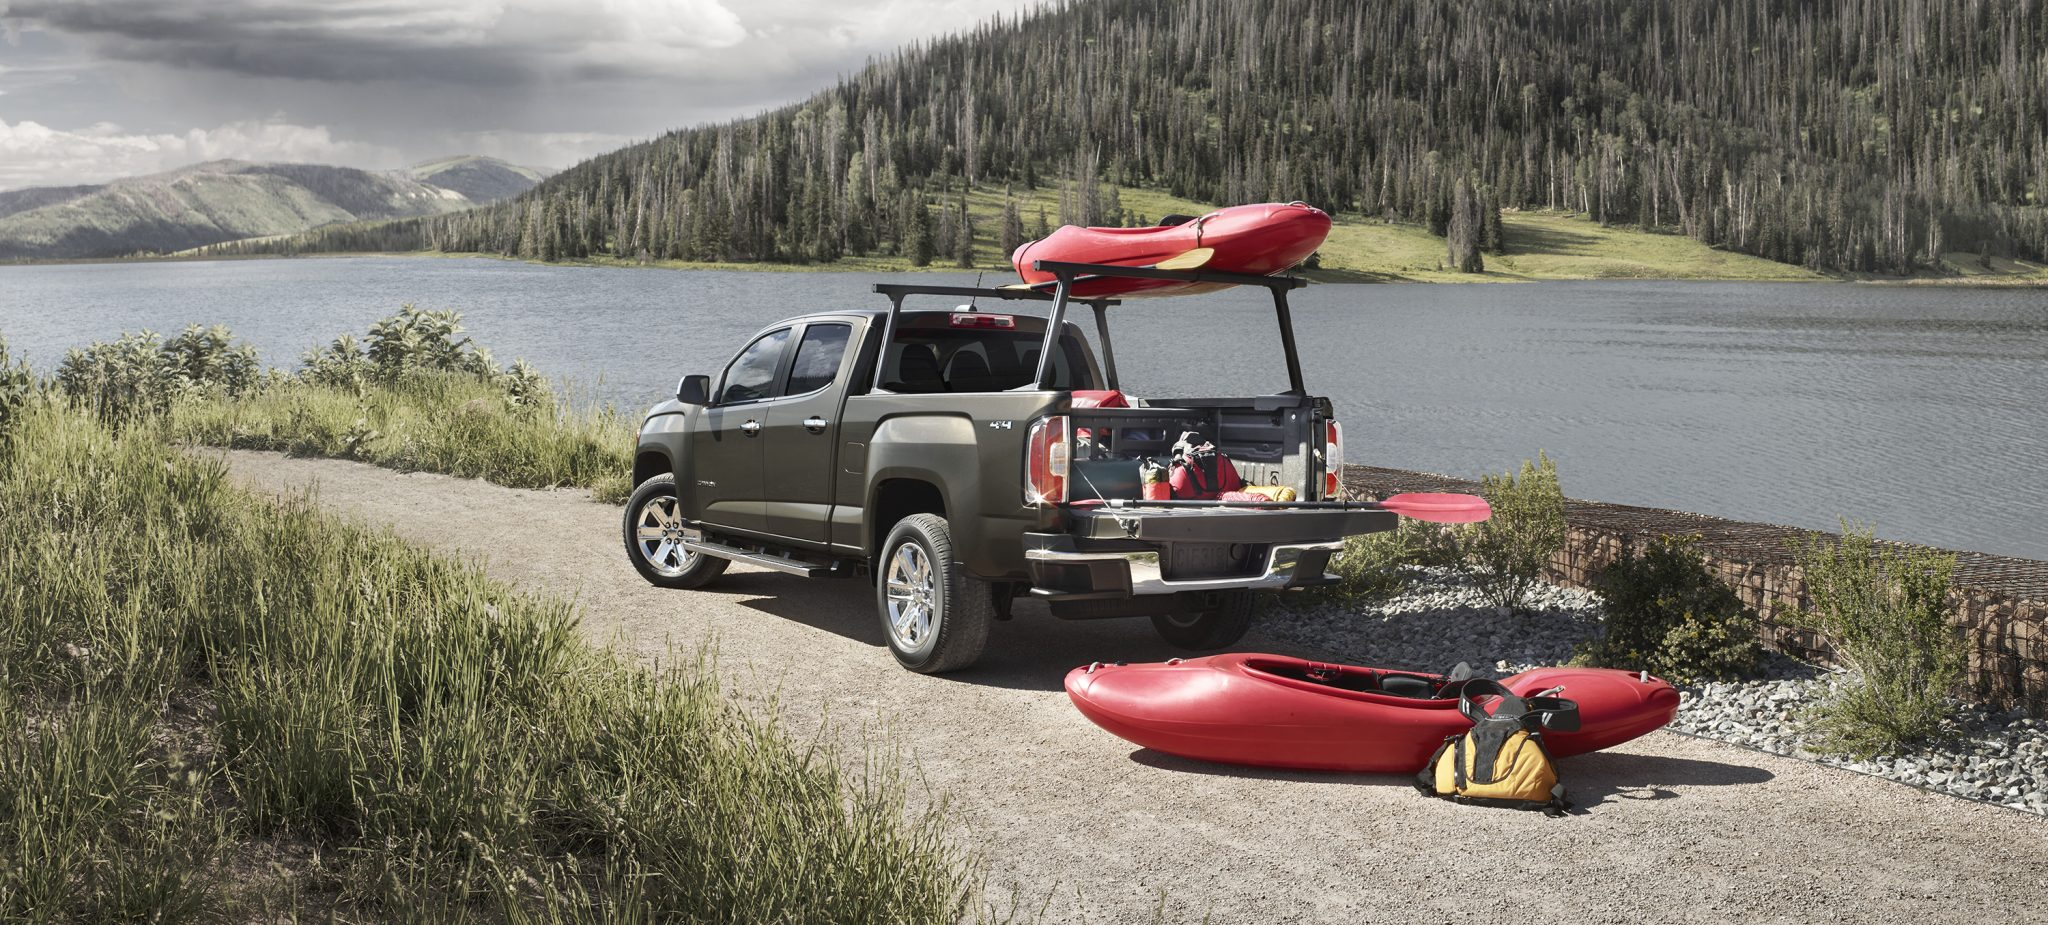 2015 Gmc Accessories >> All The 2015 Gmc Canyon Accessories In A Nutshell The